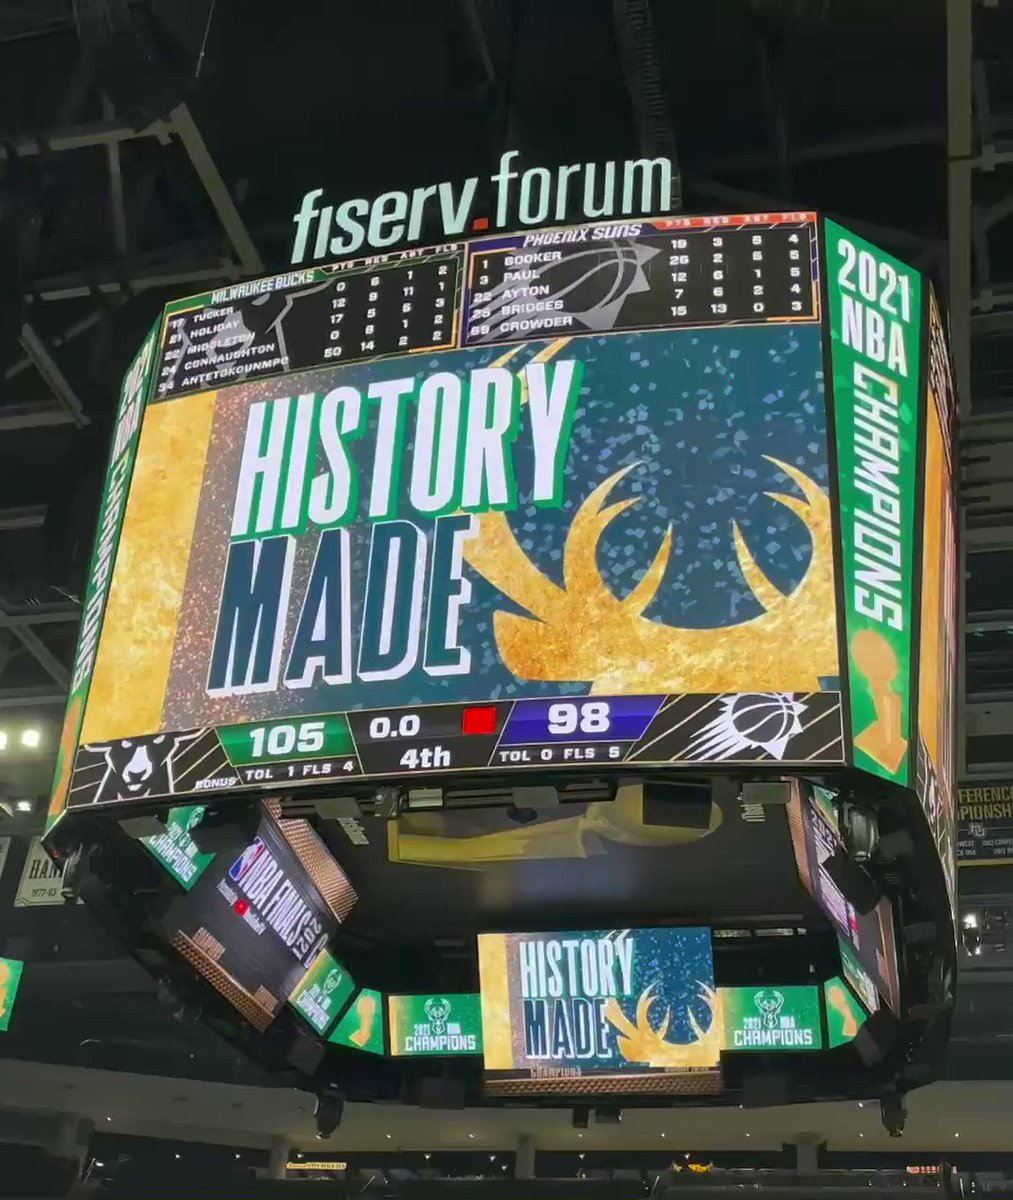 @WJHWInc would like to Congratulate the @Bucks for bringing the @NBA Championship back to Milwaukee after 50 years!! And of course @FiservForum you were looking good! 👌#FearTheDear #WeAreWJHW #Scoreboards #VideoProduction #SoundSystems https://t.co/rpRdpuJKm5